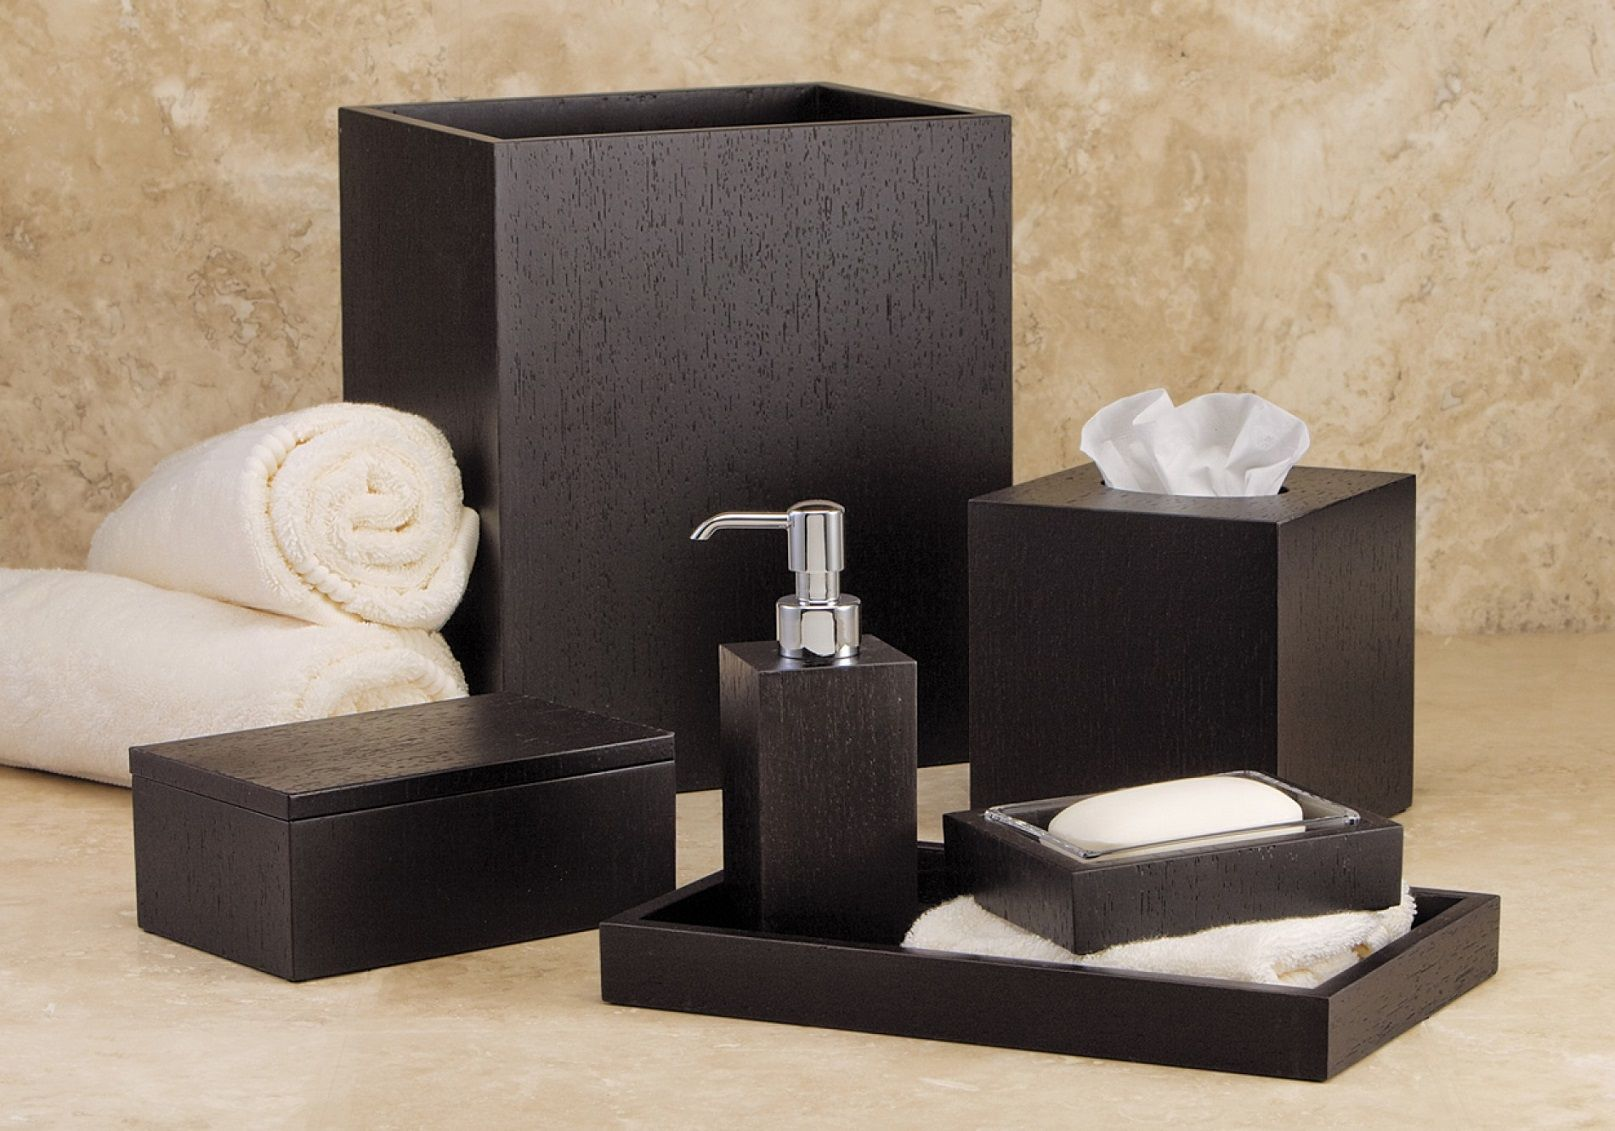 Italian Wenge Hotel Bathroom accessories set | For the ...